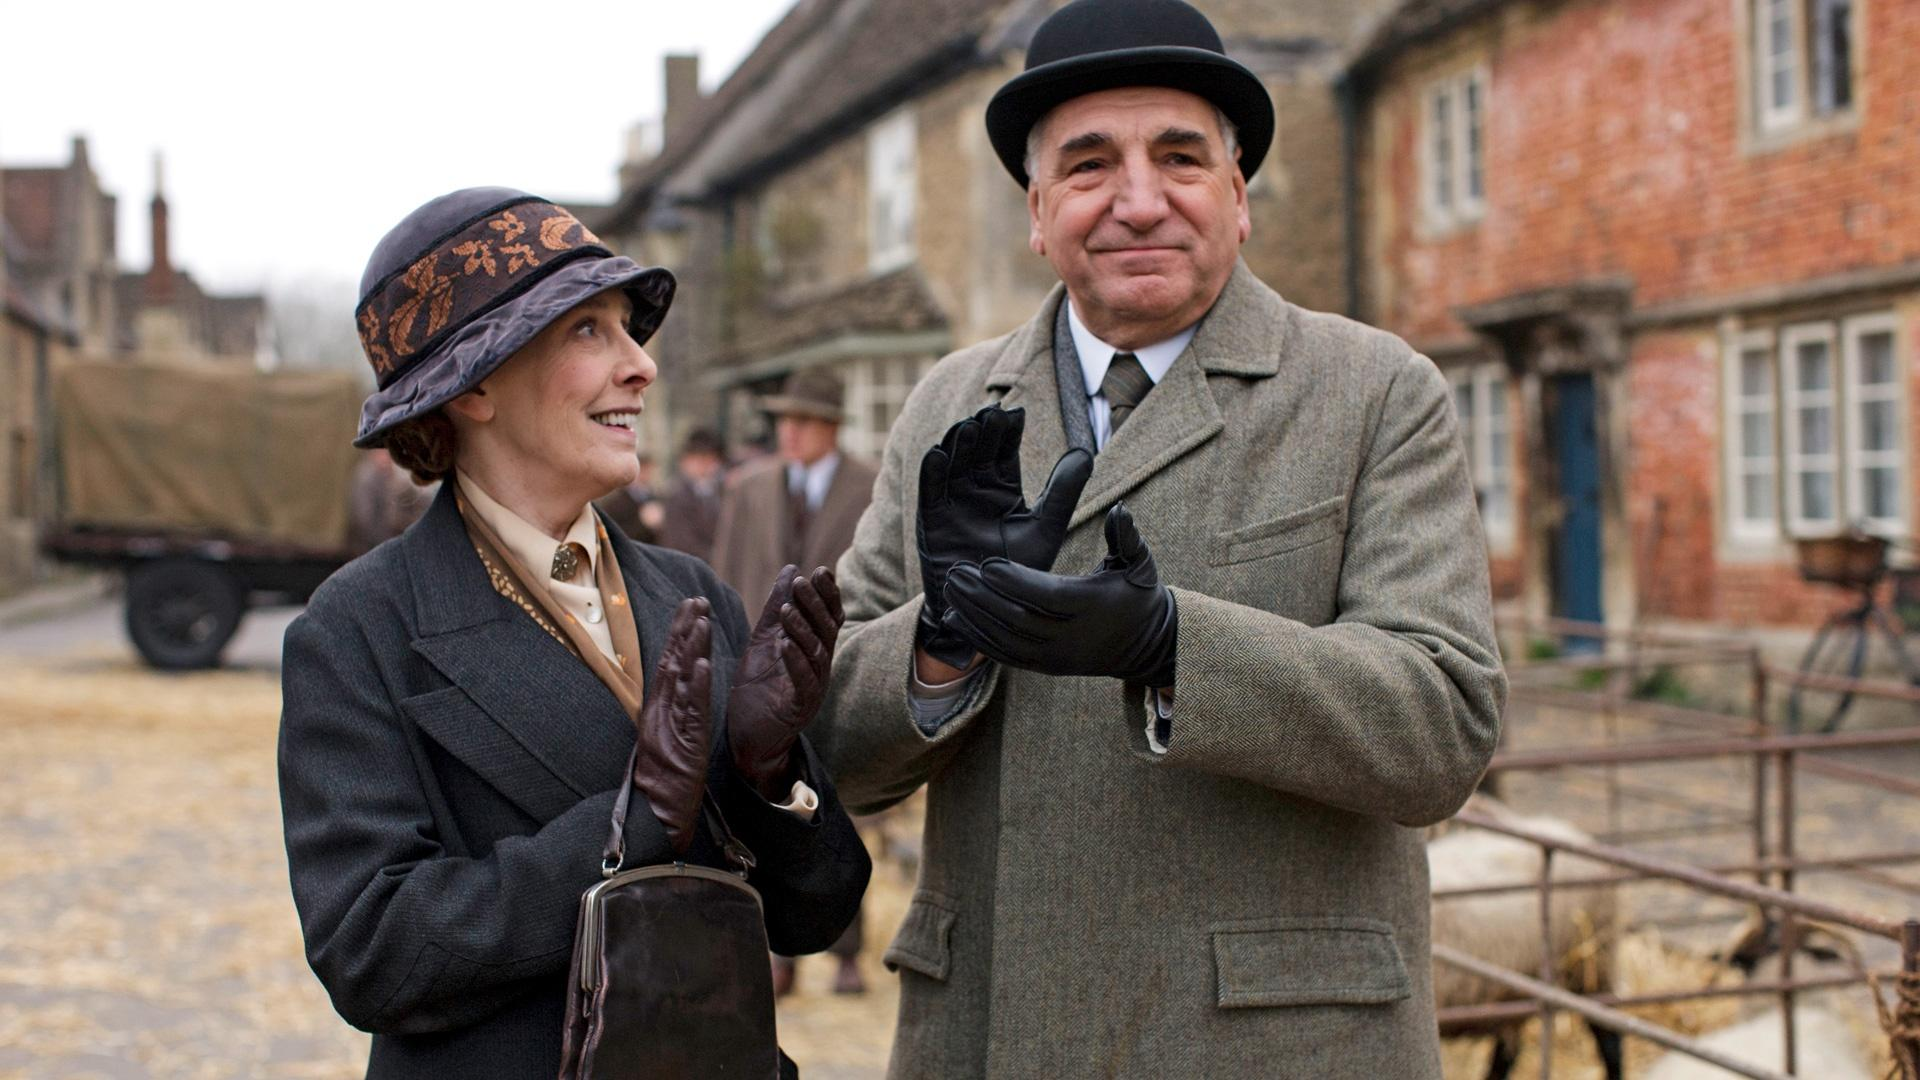 downton abbey s03e09 vostfr streaming